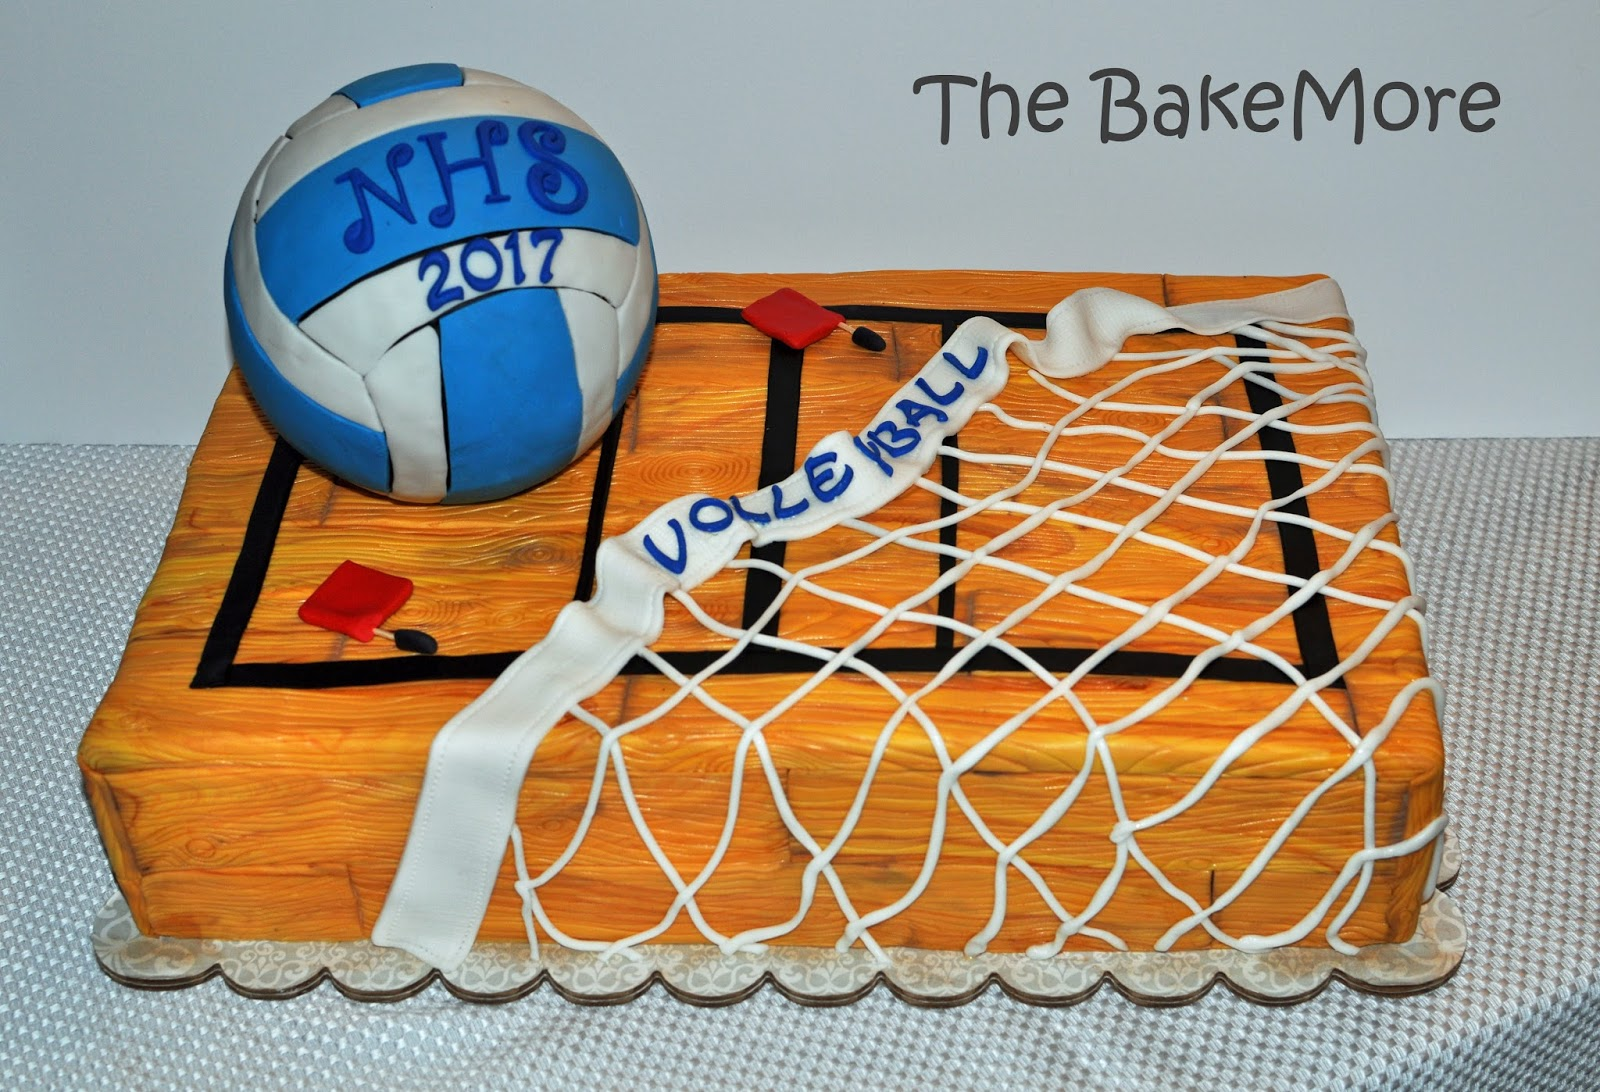 Slutty Volleyball Delightful the bake more: volleyball court cake